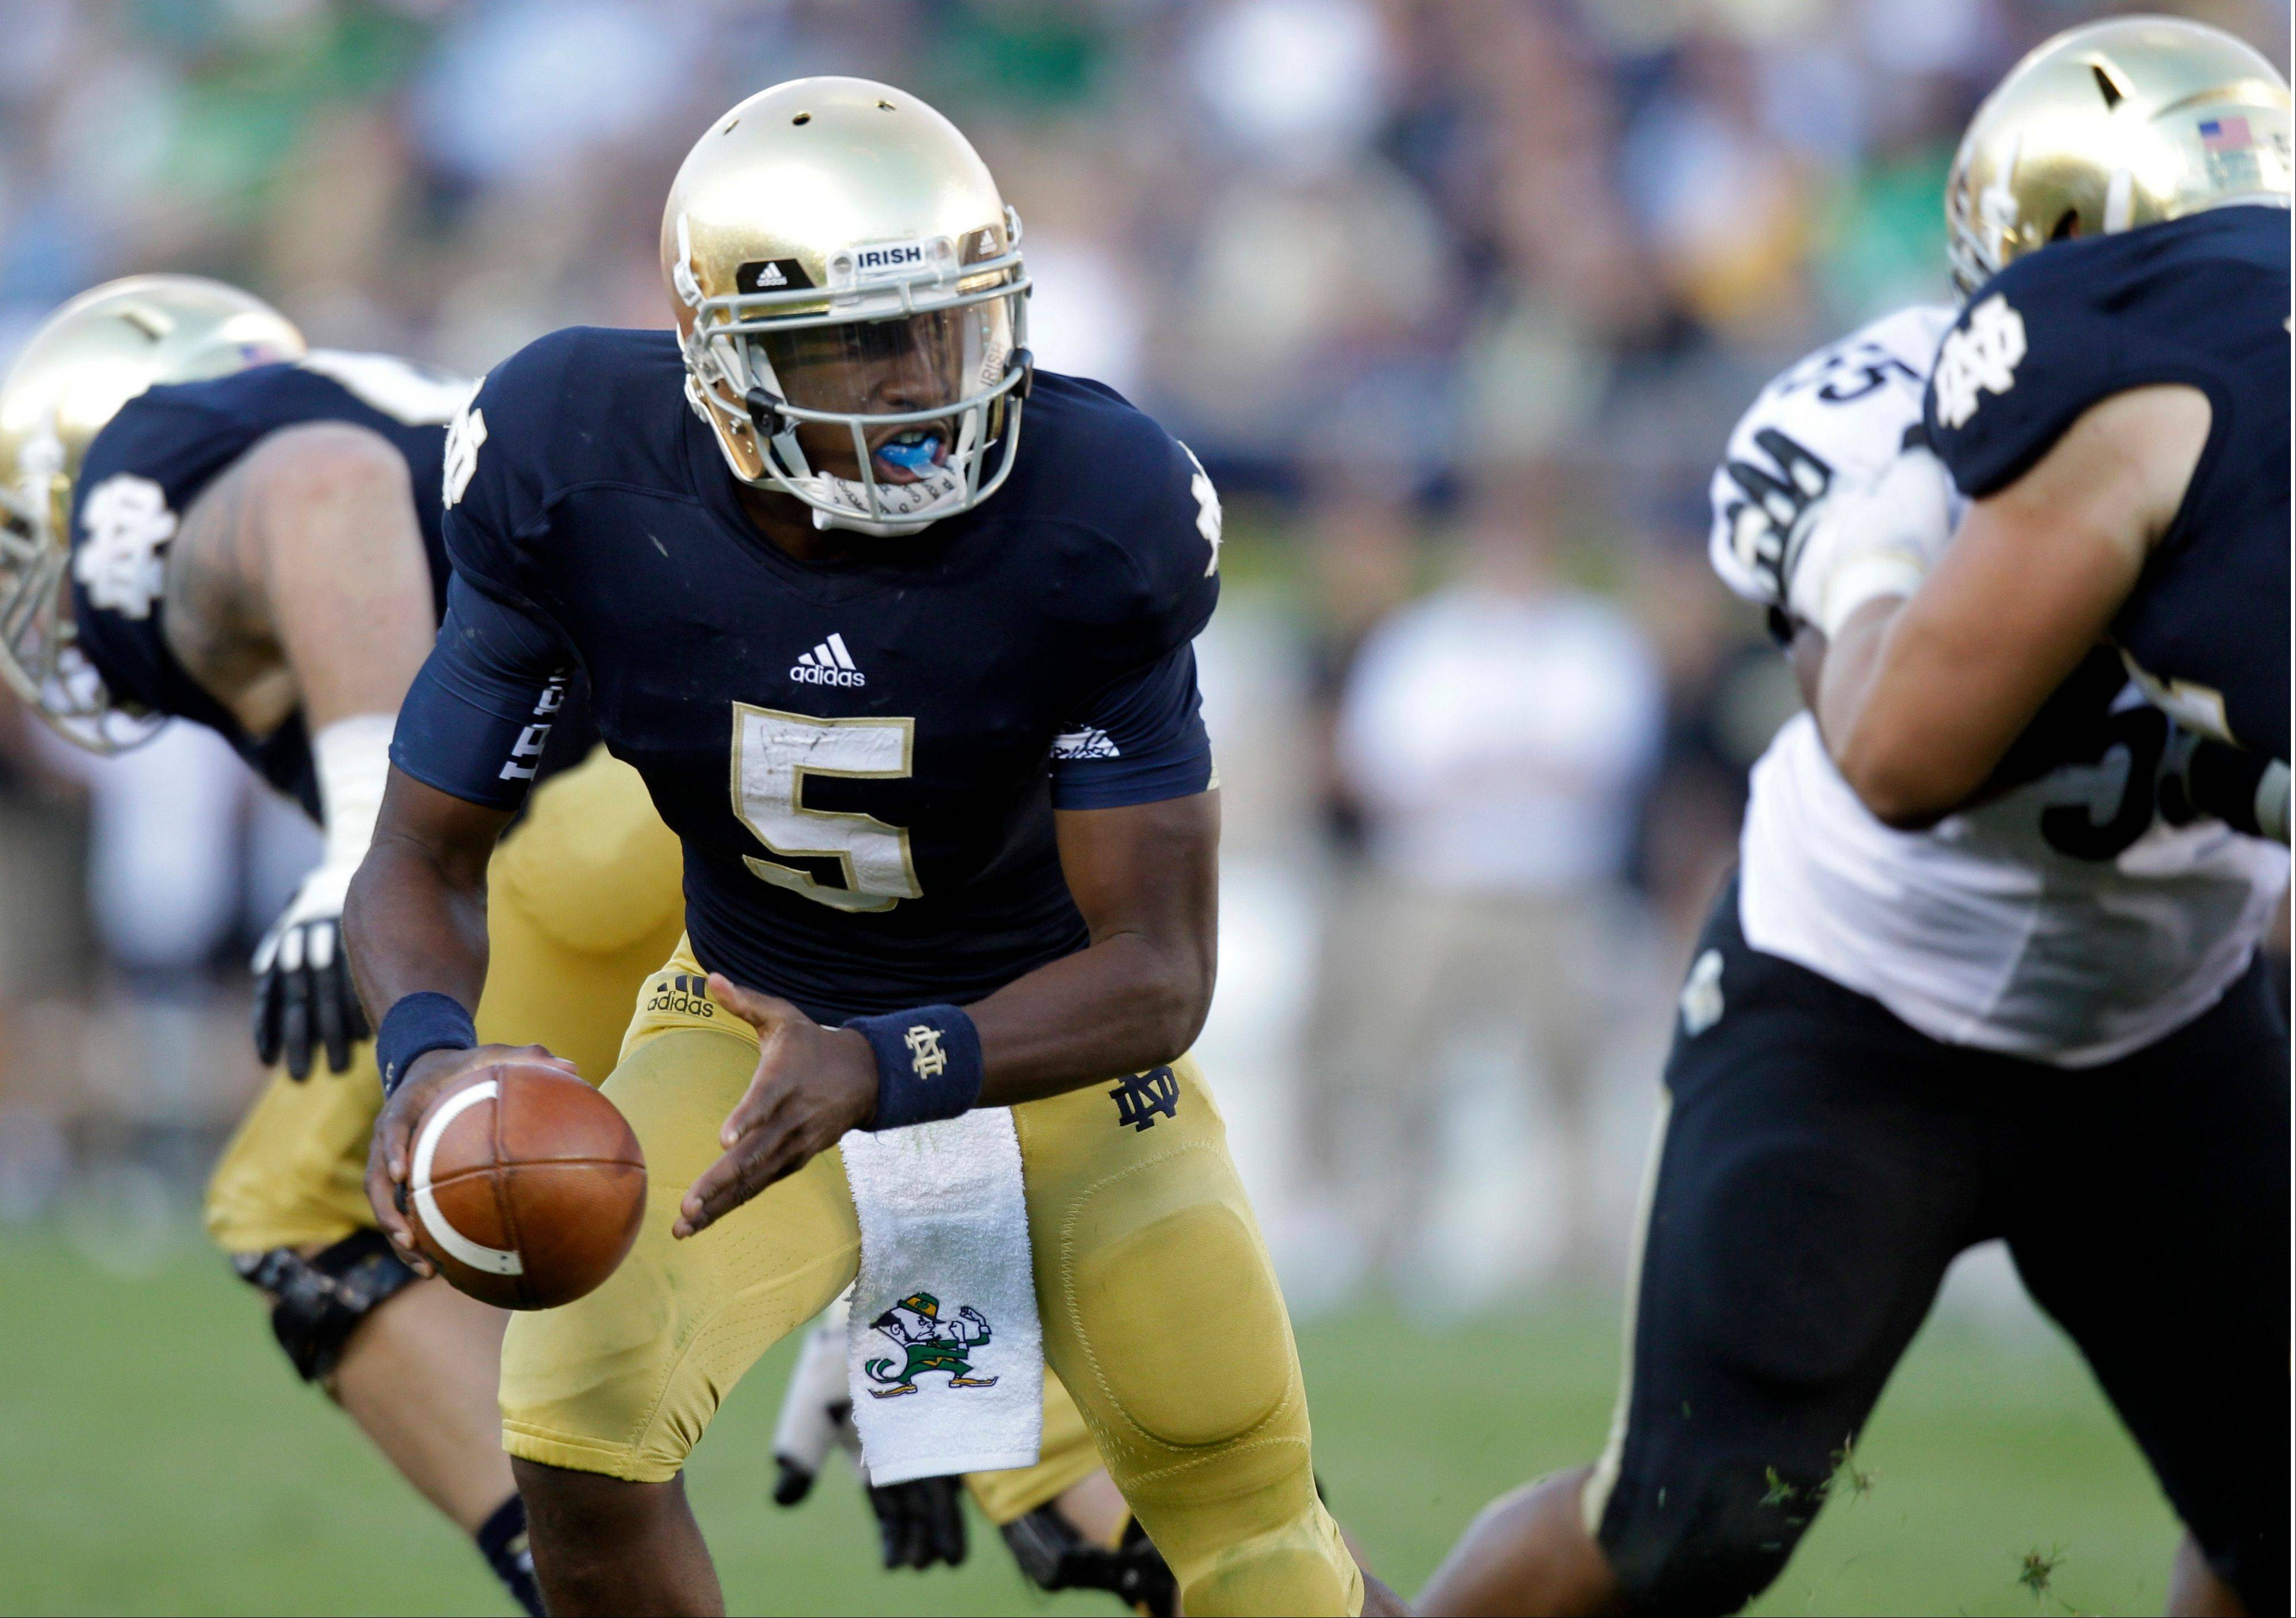 Notre Dame quarterback Everett Golson will start against Oklahoma Saturday, Irish coach Brian Kelly said. Golson missed last week's game against BYU with a concussion.